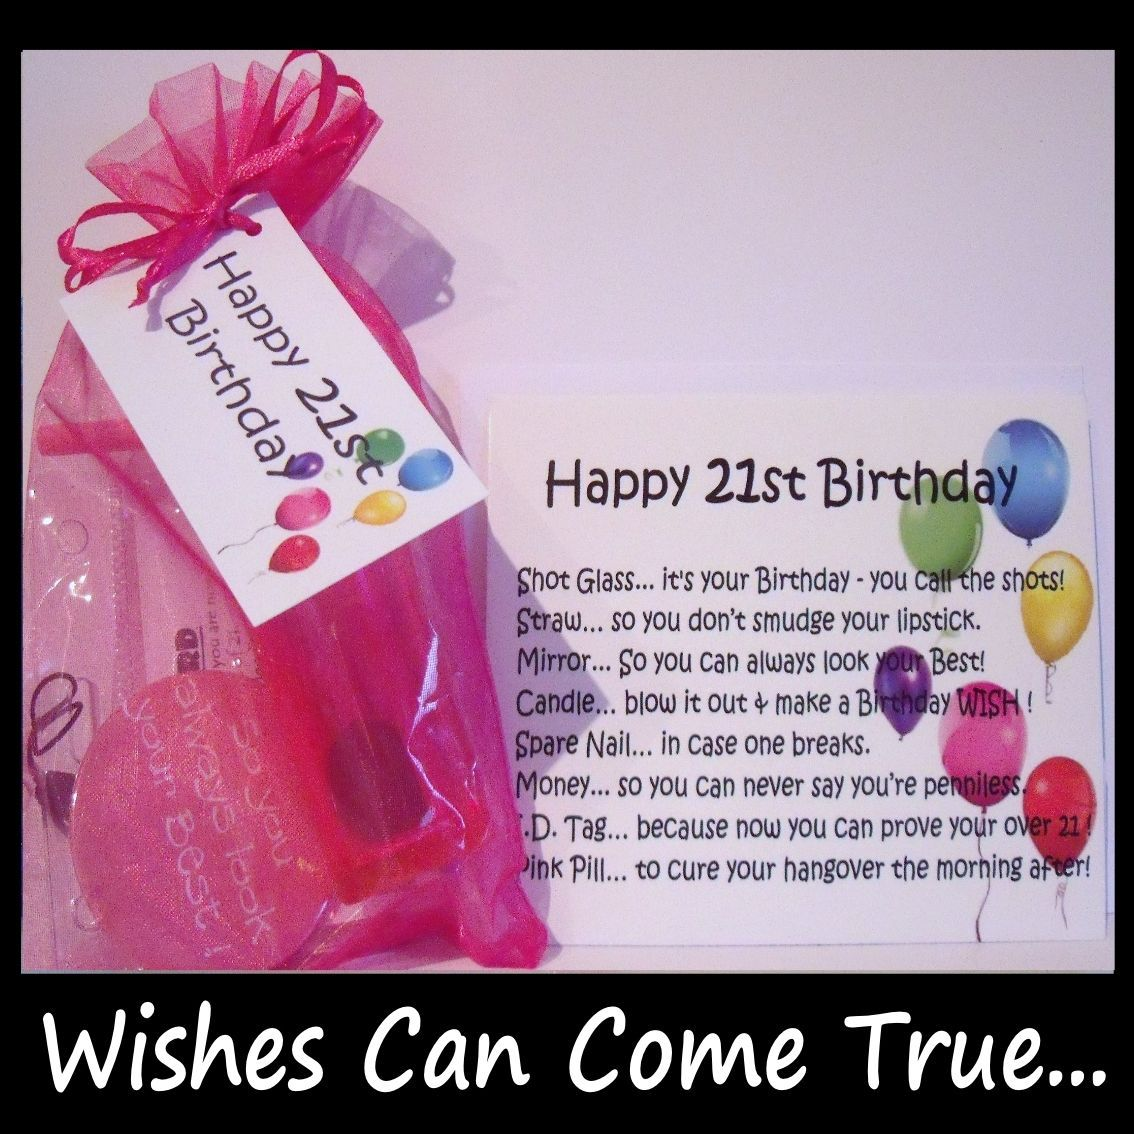 21st Birthday Gifts 21st Birthday Survival Kit Gift Card 21st